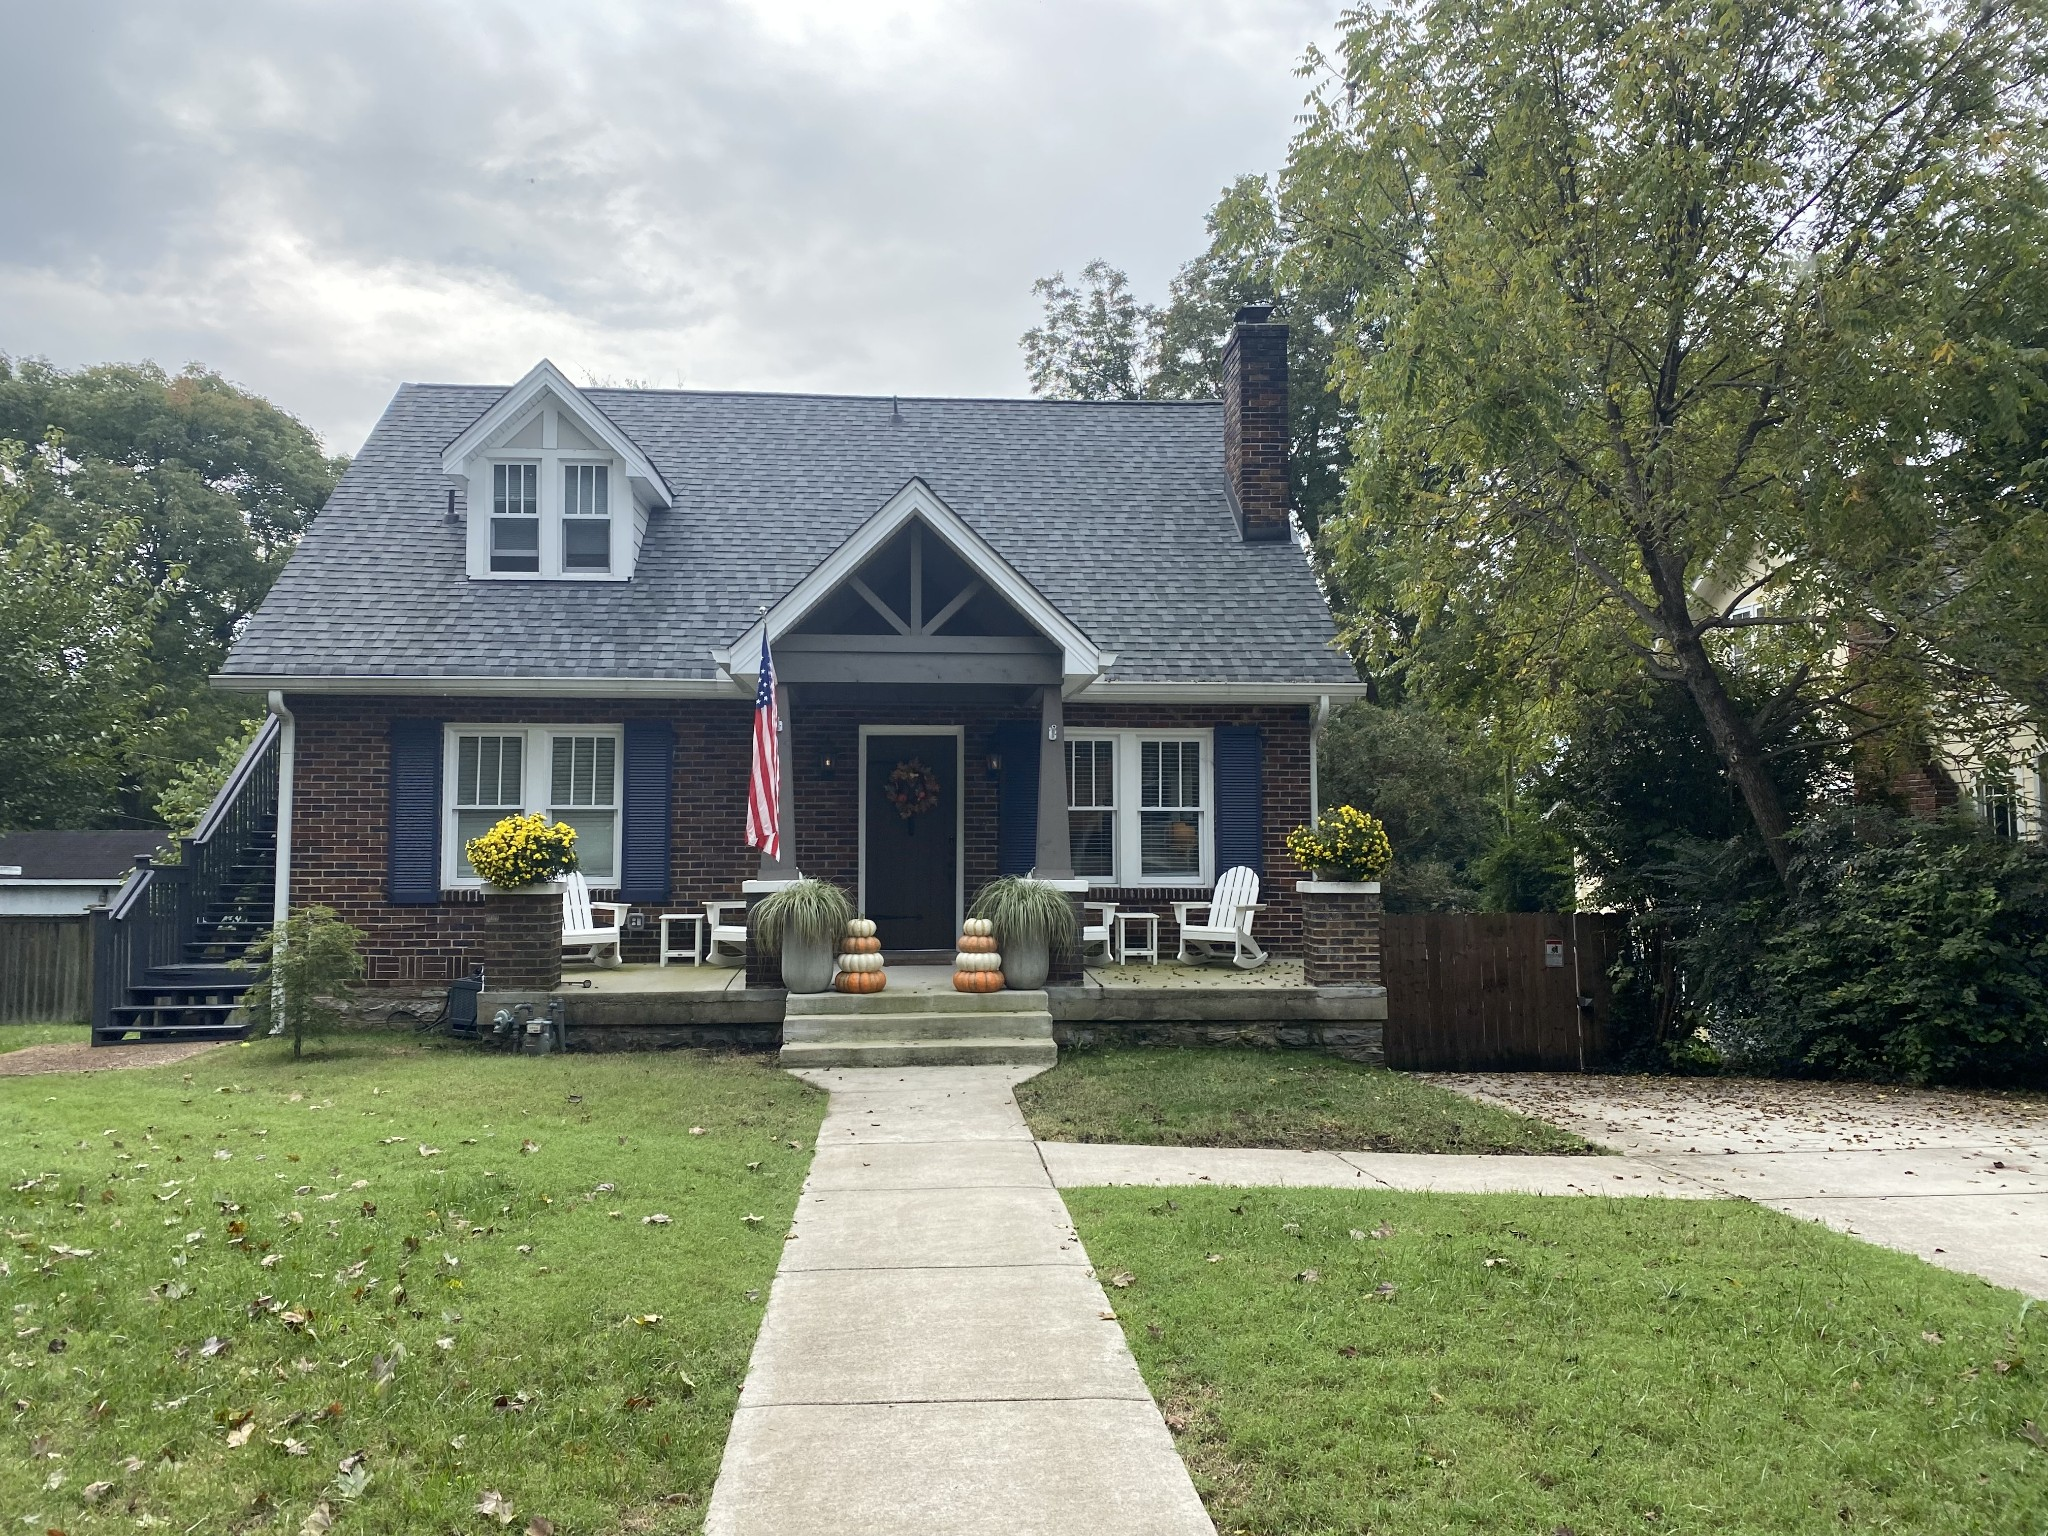 VERY UNIQUE PROPERTY in Sylvan Park!  3 bedrooms on main level, garage apt with sep entrance upstairs, basement has full bath too for income producing. Deemed Duplex on Tax Records, New roof, new windows, new kitchen and more! Fabulous covered porch and flat lg backyard.